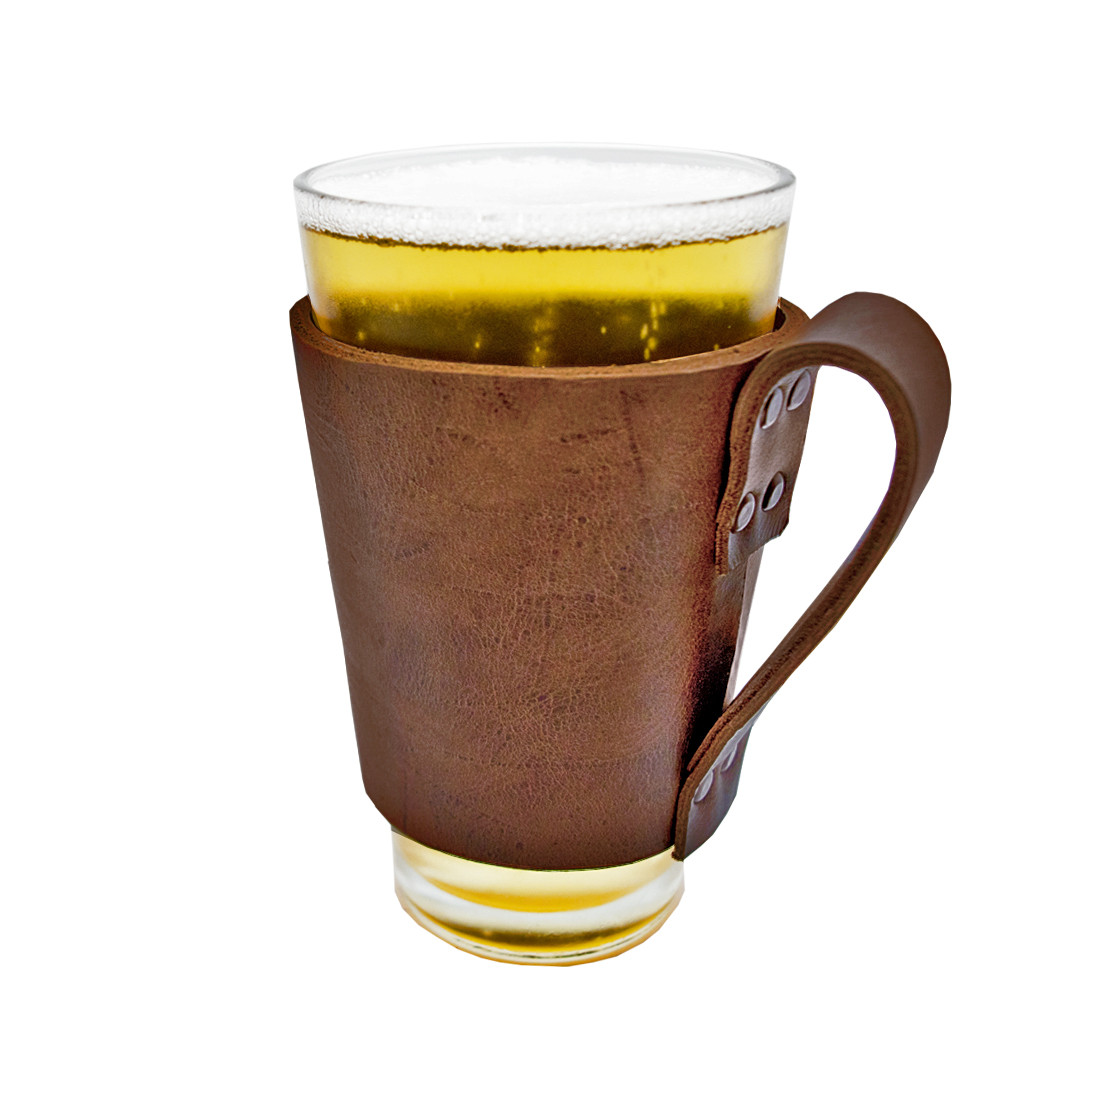 leather-pint-sleeve-handle-hide-and-drink-2